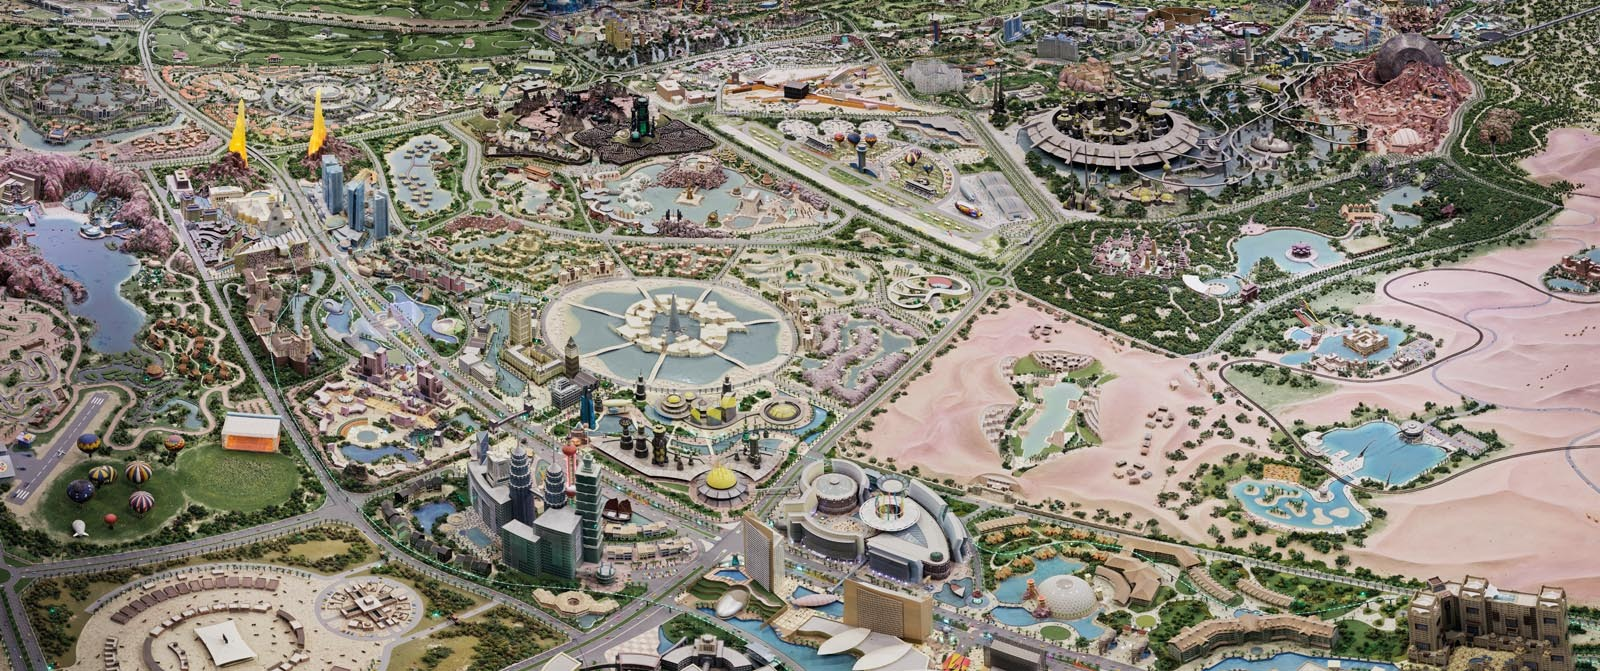 "25° 03' 32"" N 55° 14' 45"" E: Model of Dubailand, Tor Seidel, 2011"